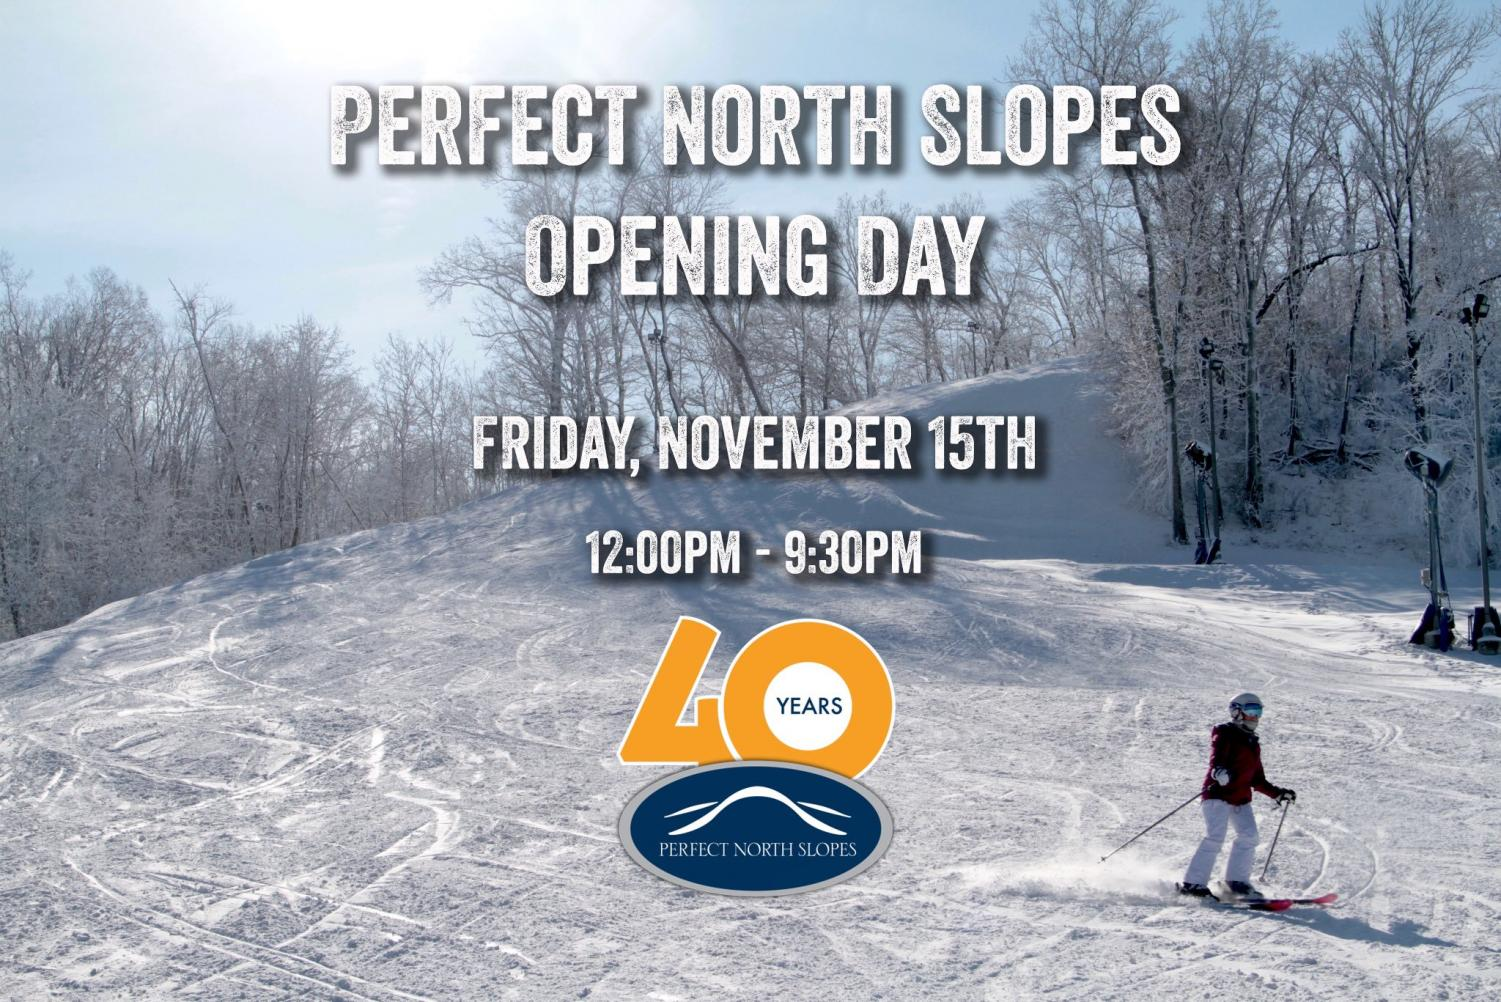 Perfect North Slopes opens the earliest in the history of the slopes.